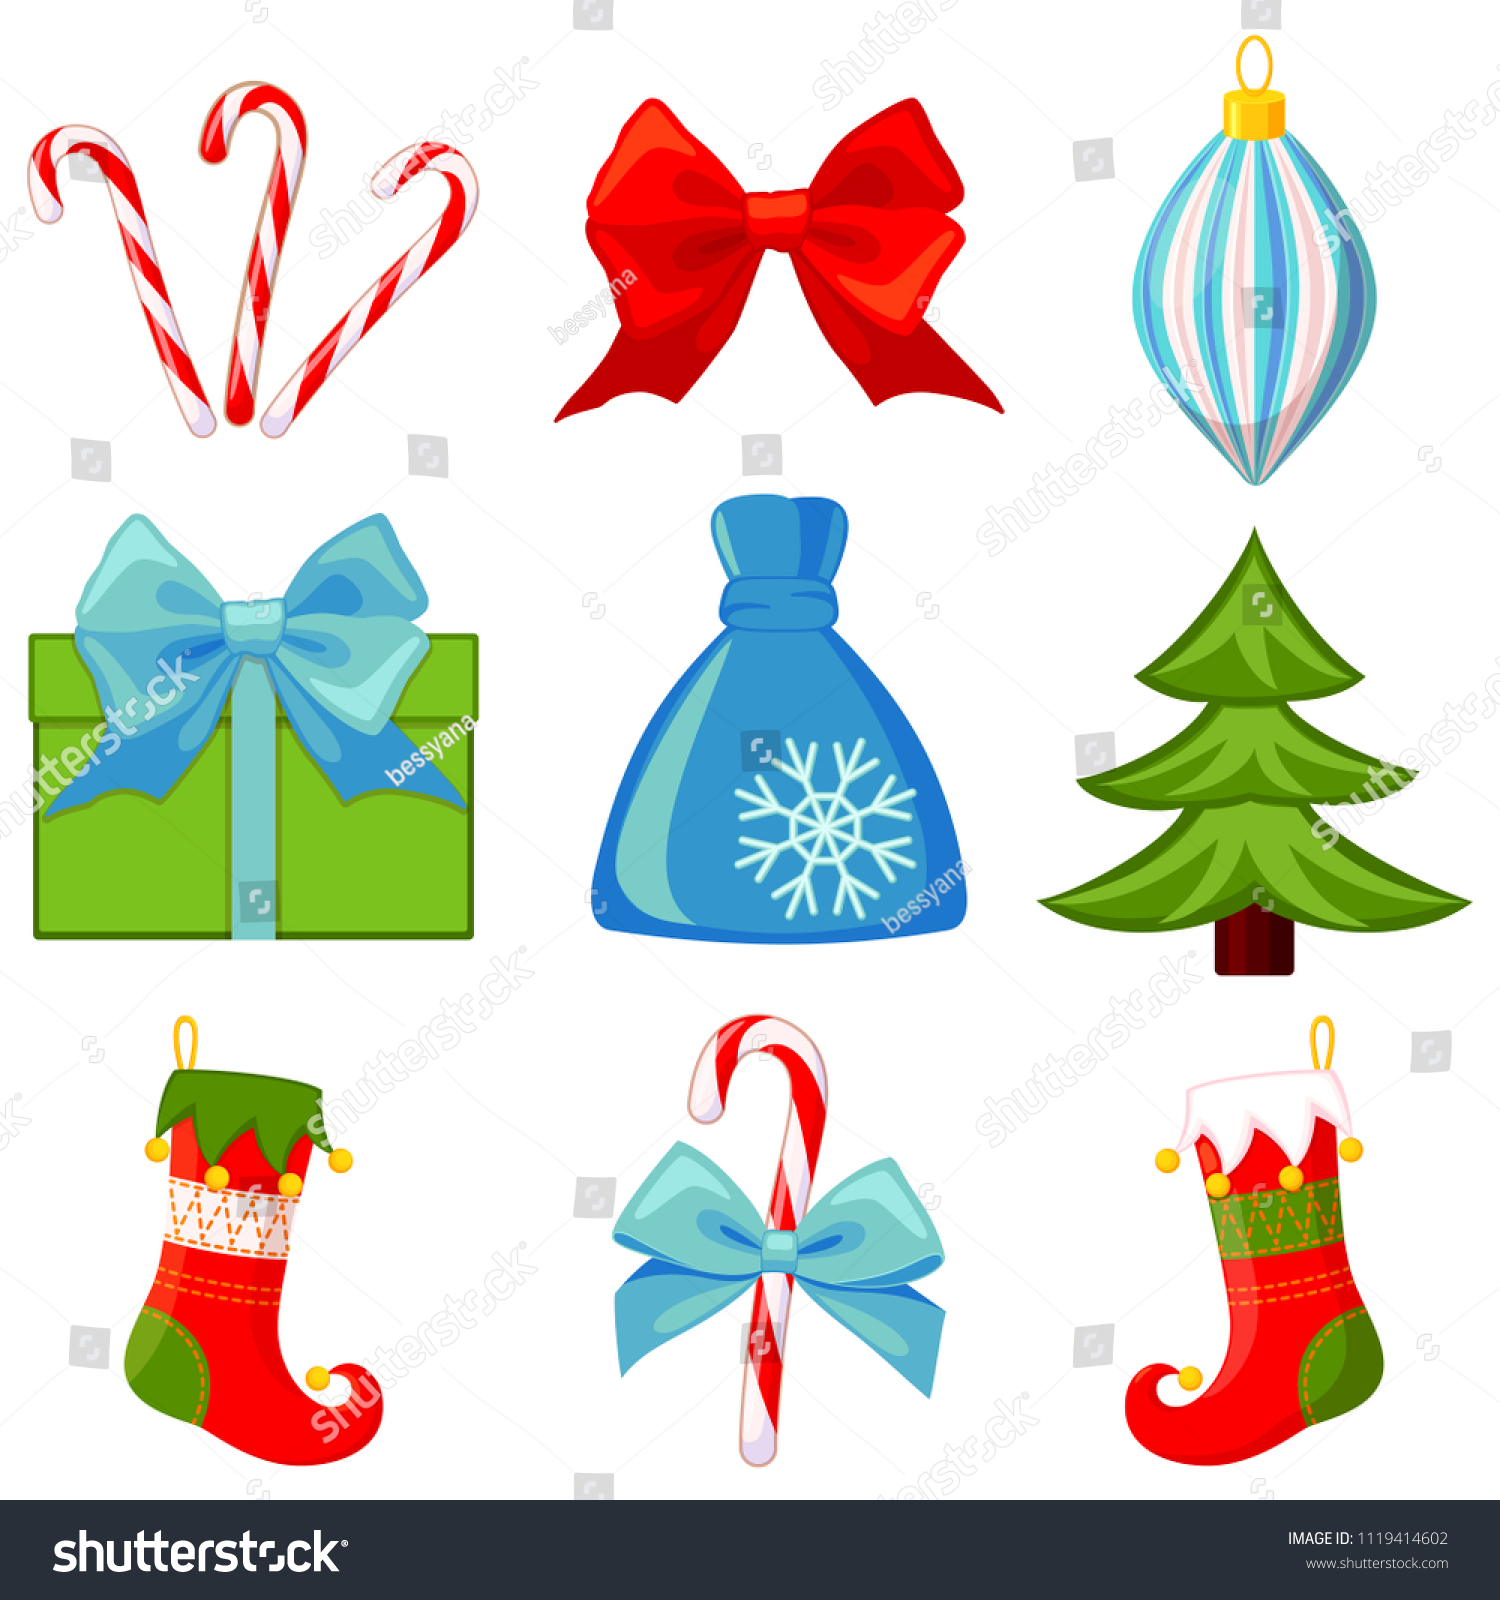 Colorful Cartoon 9 Christmas Elements Set New Year Holiday Decorations